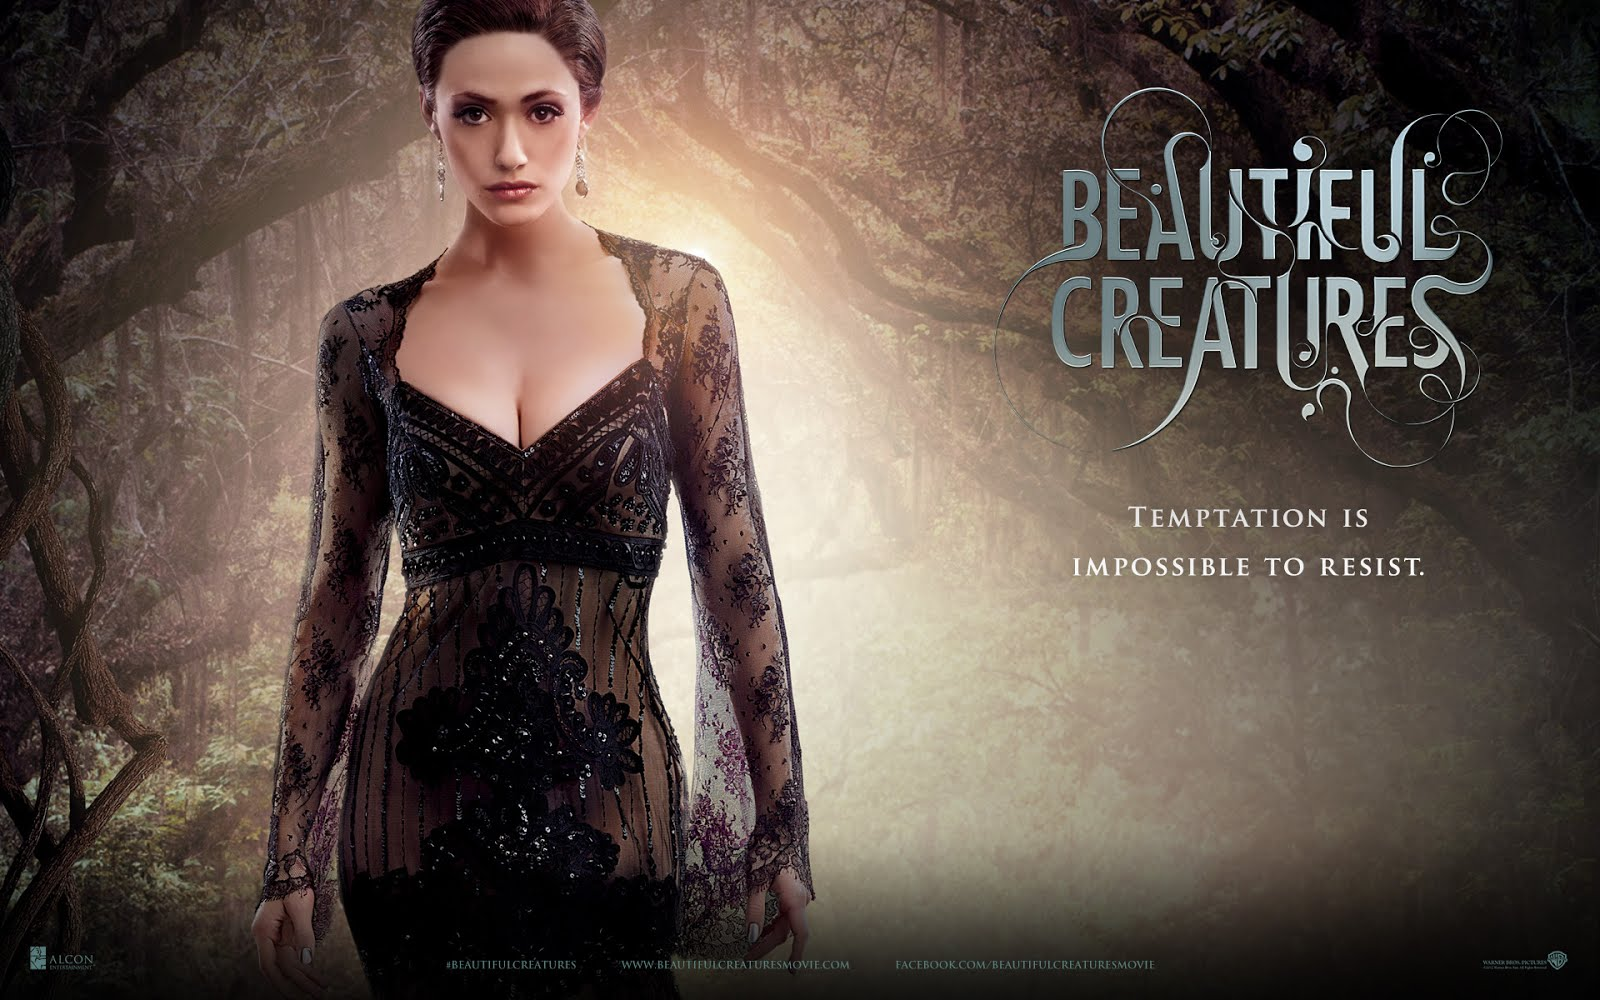 Beautiful Creatures 2013 Movie Wallpapers in HD Resolutions